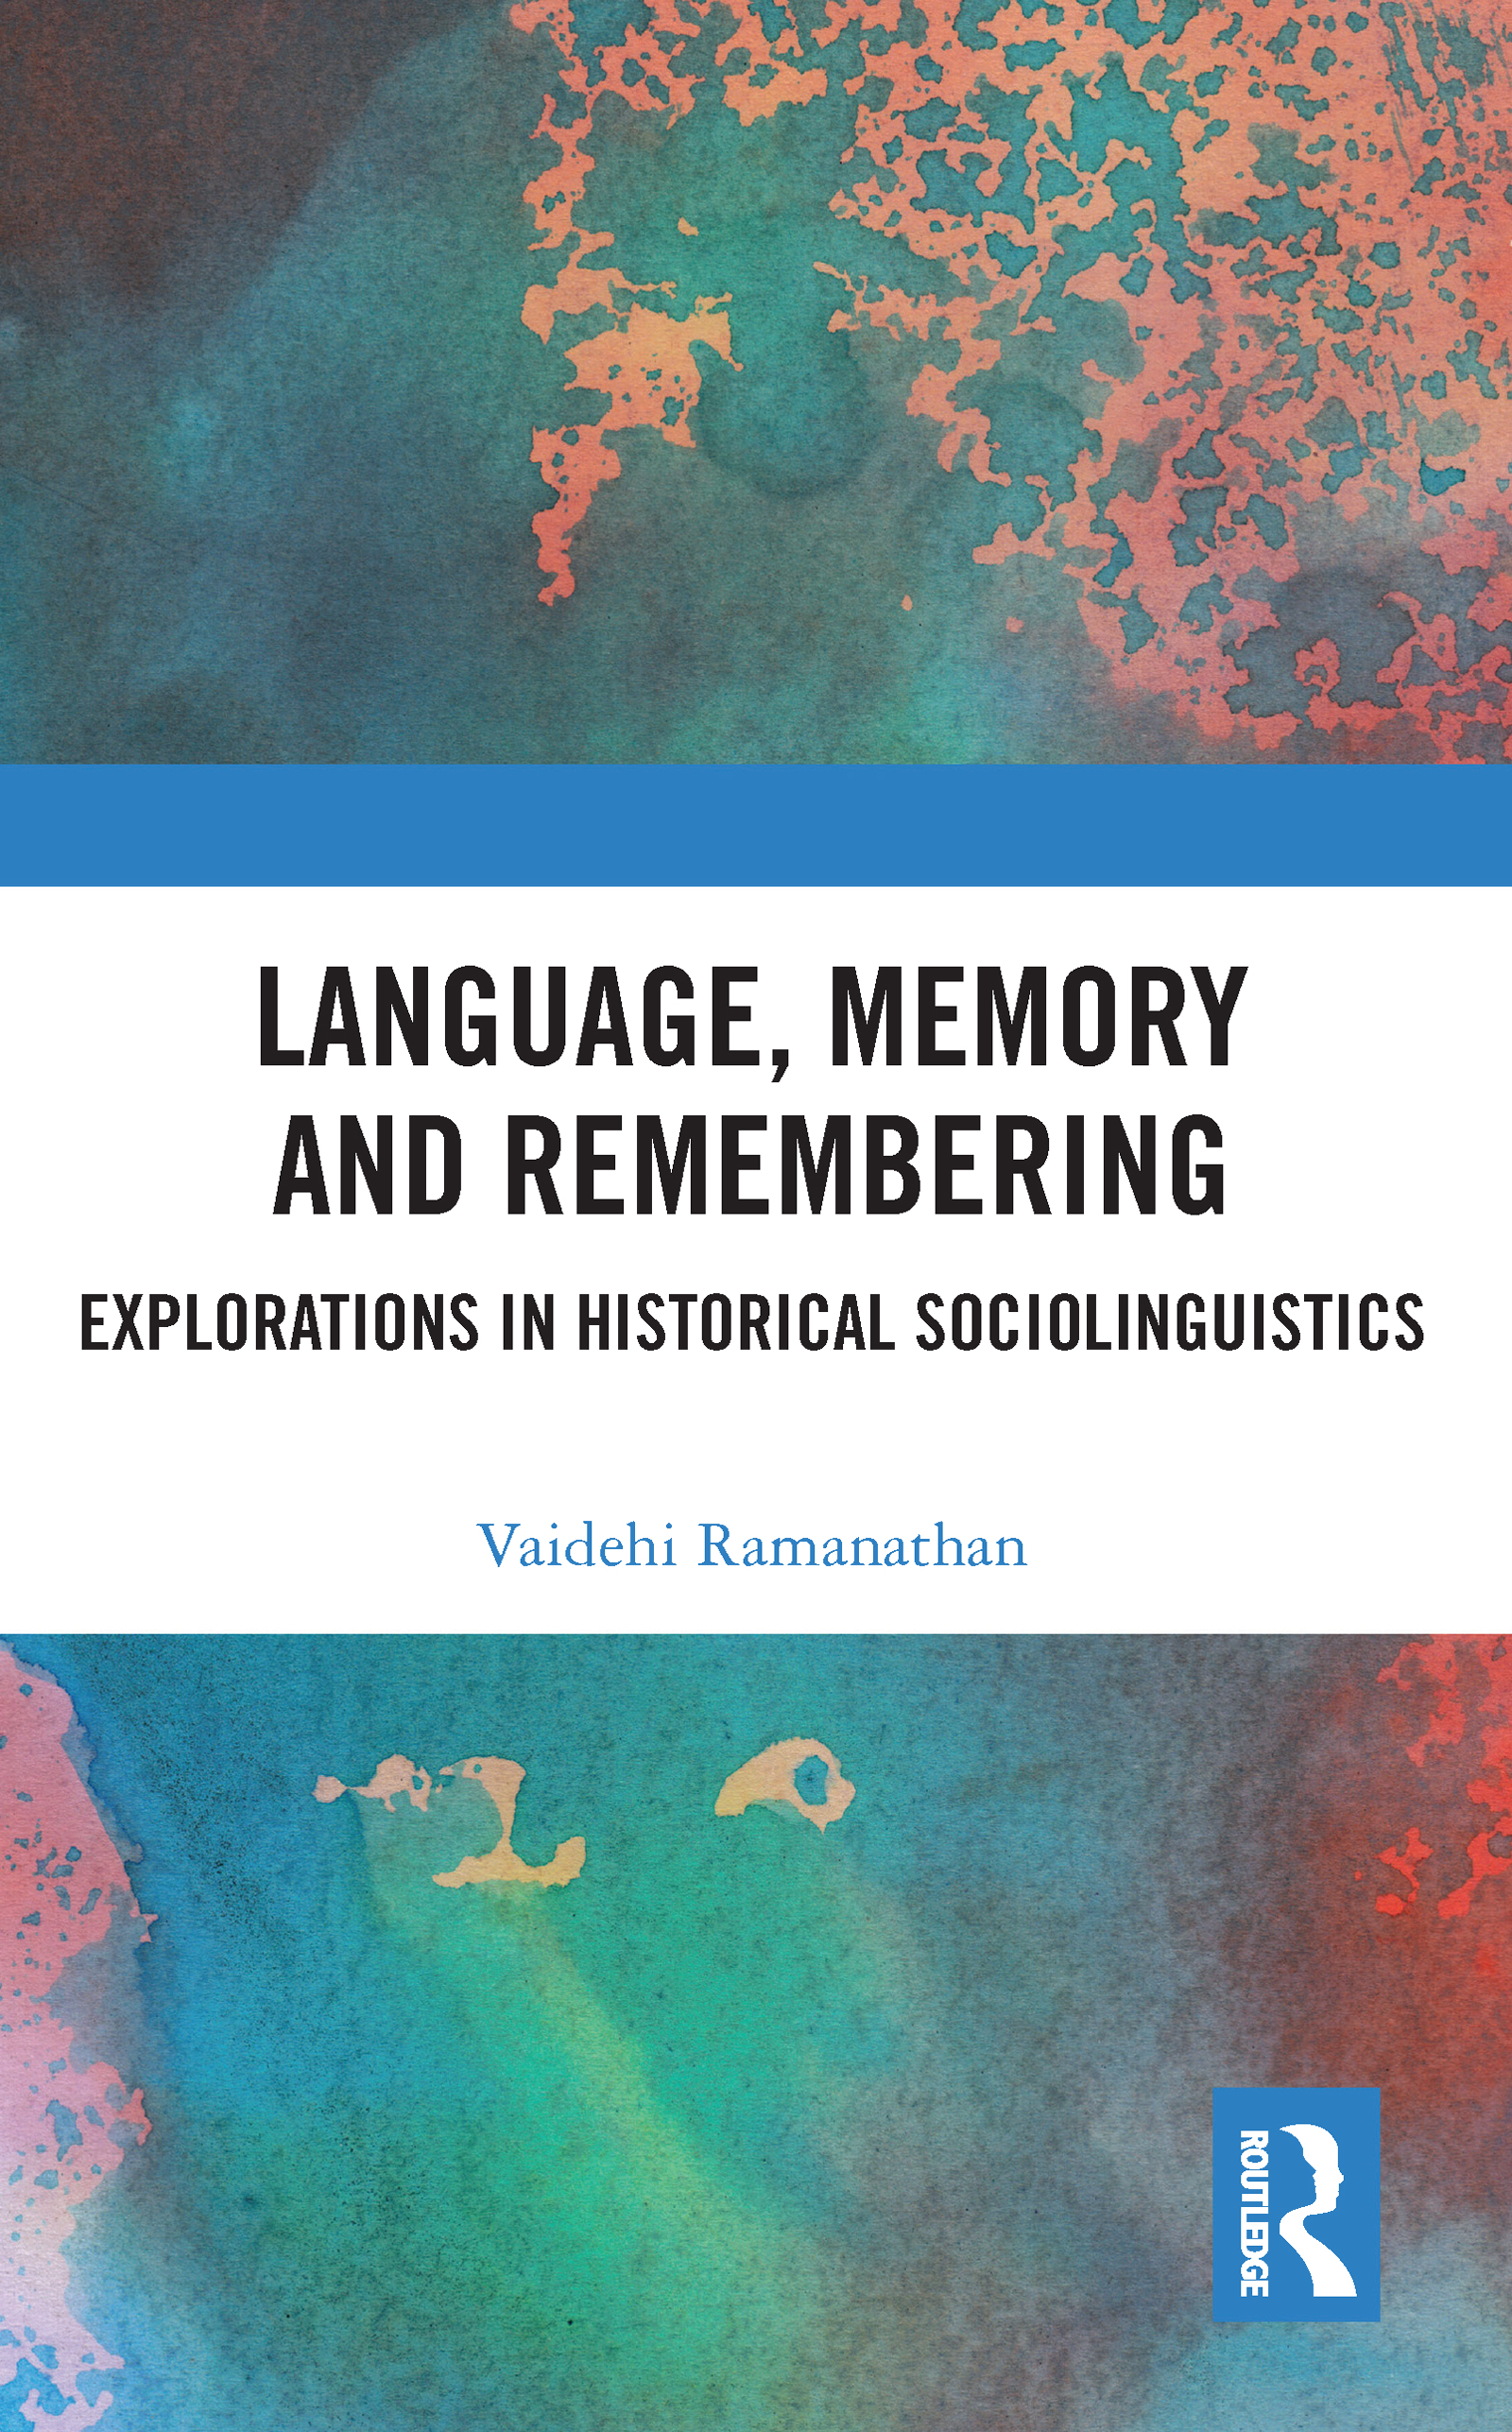 Language, Memory and Remembering